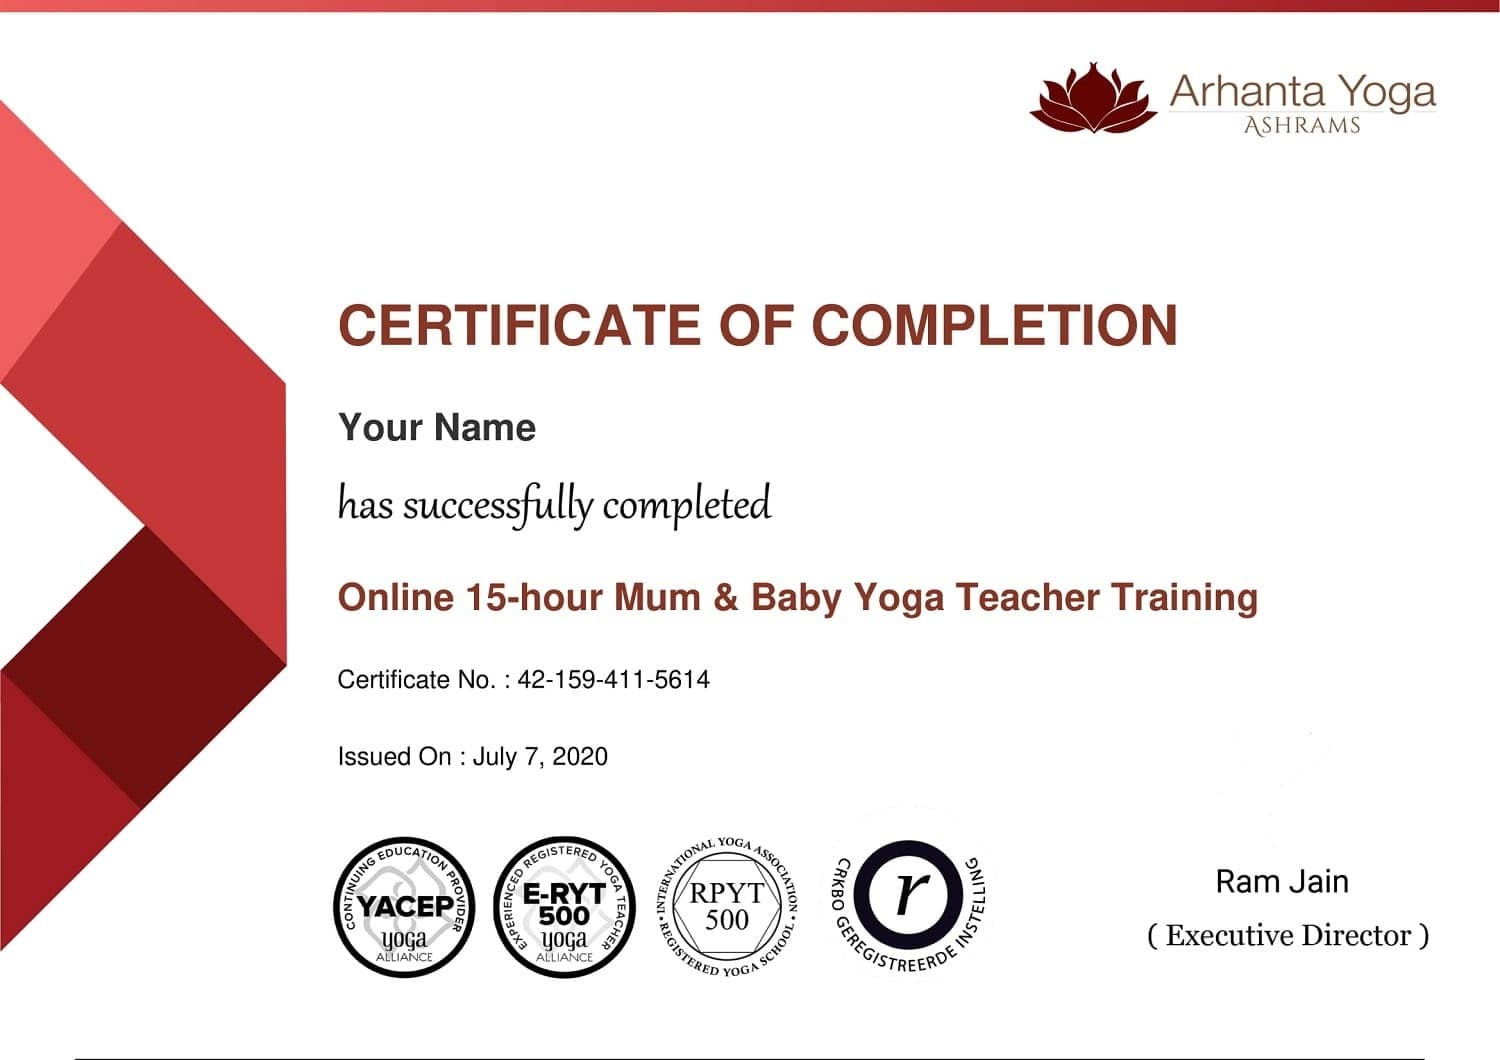 mum-baby-yoga-teacher-training-certificate-15-hour